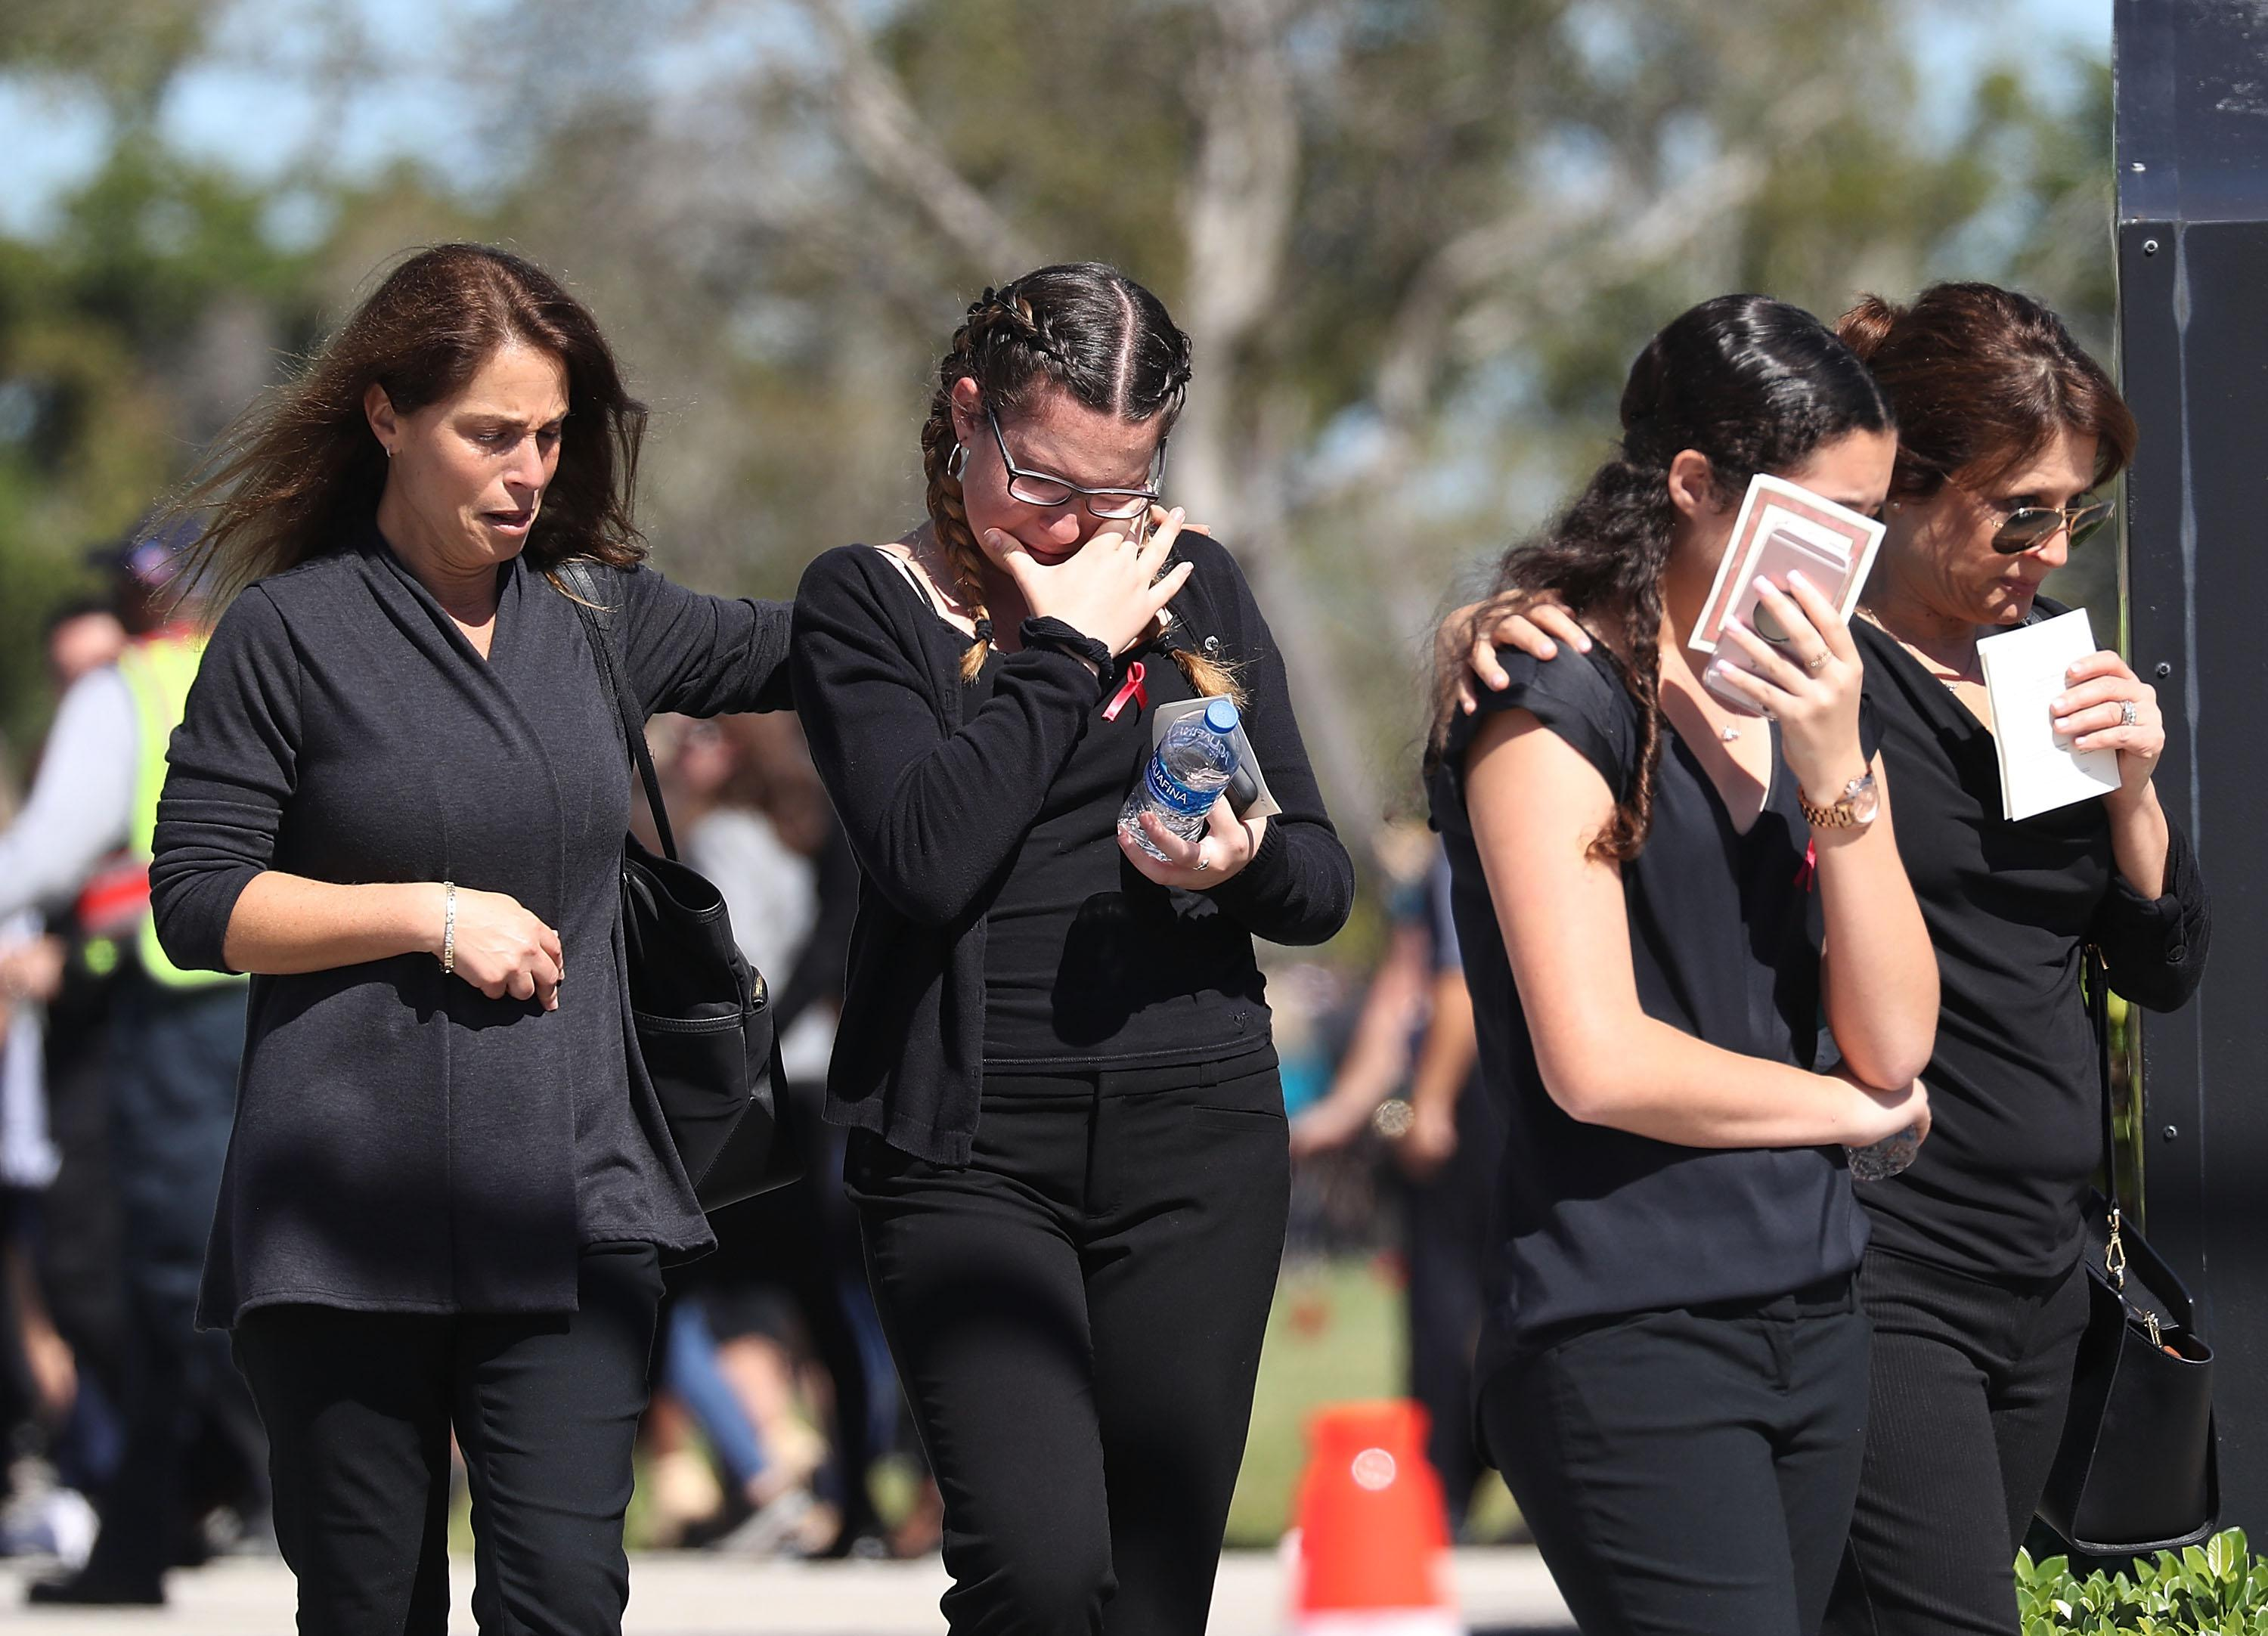 Mourners attend a funeral on February 16, 2018 in Parkland, Florida.